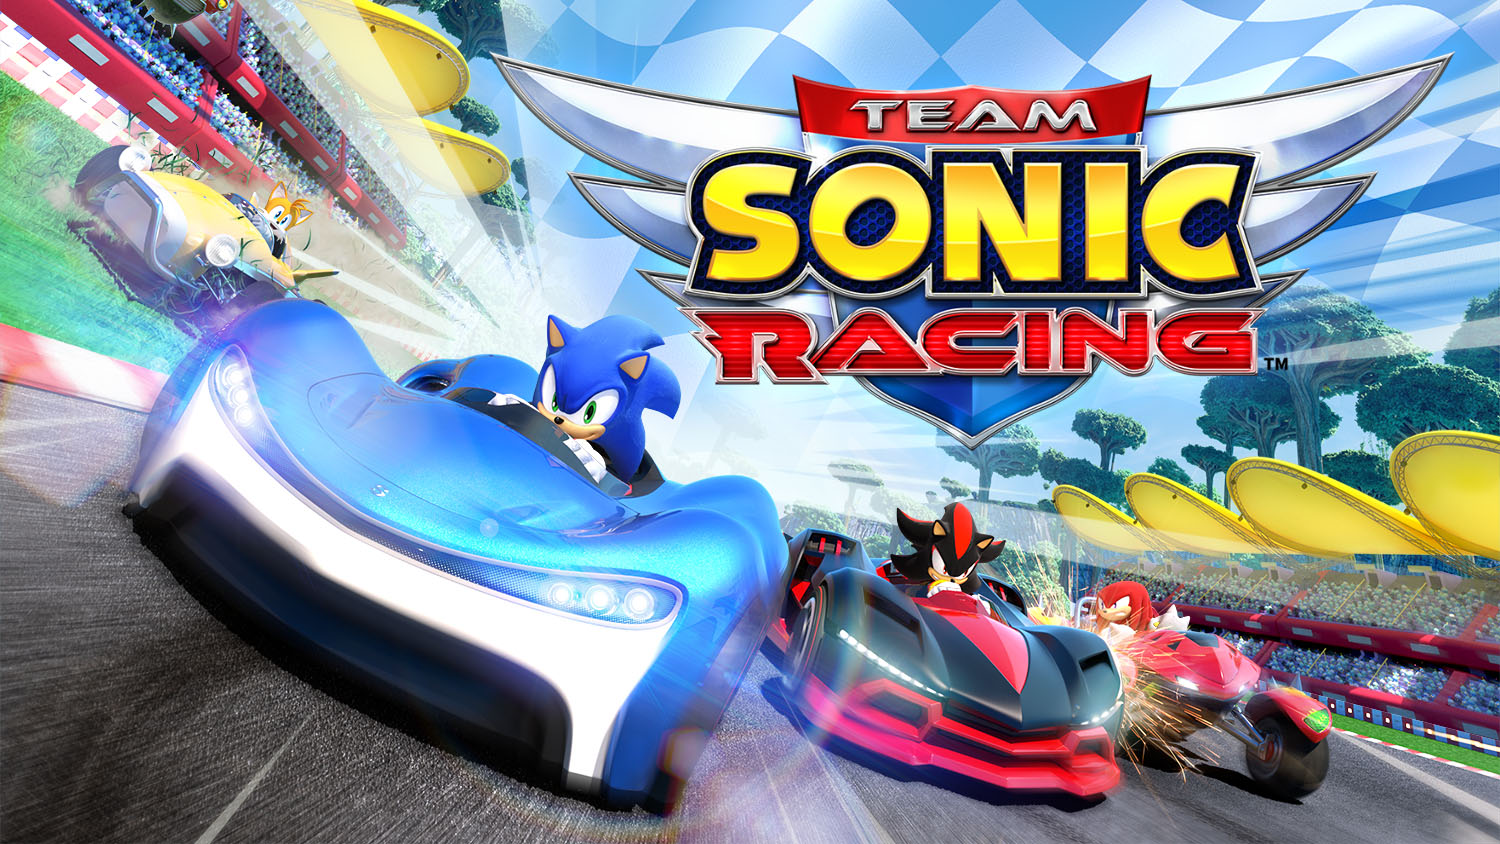 Paris Games Week 2018 - Koch Media - Team Sonic Racing